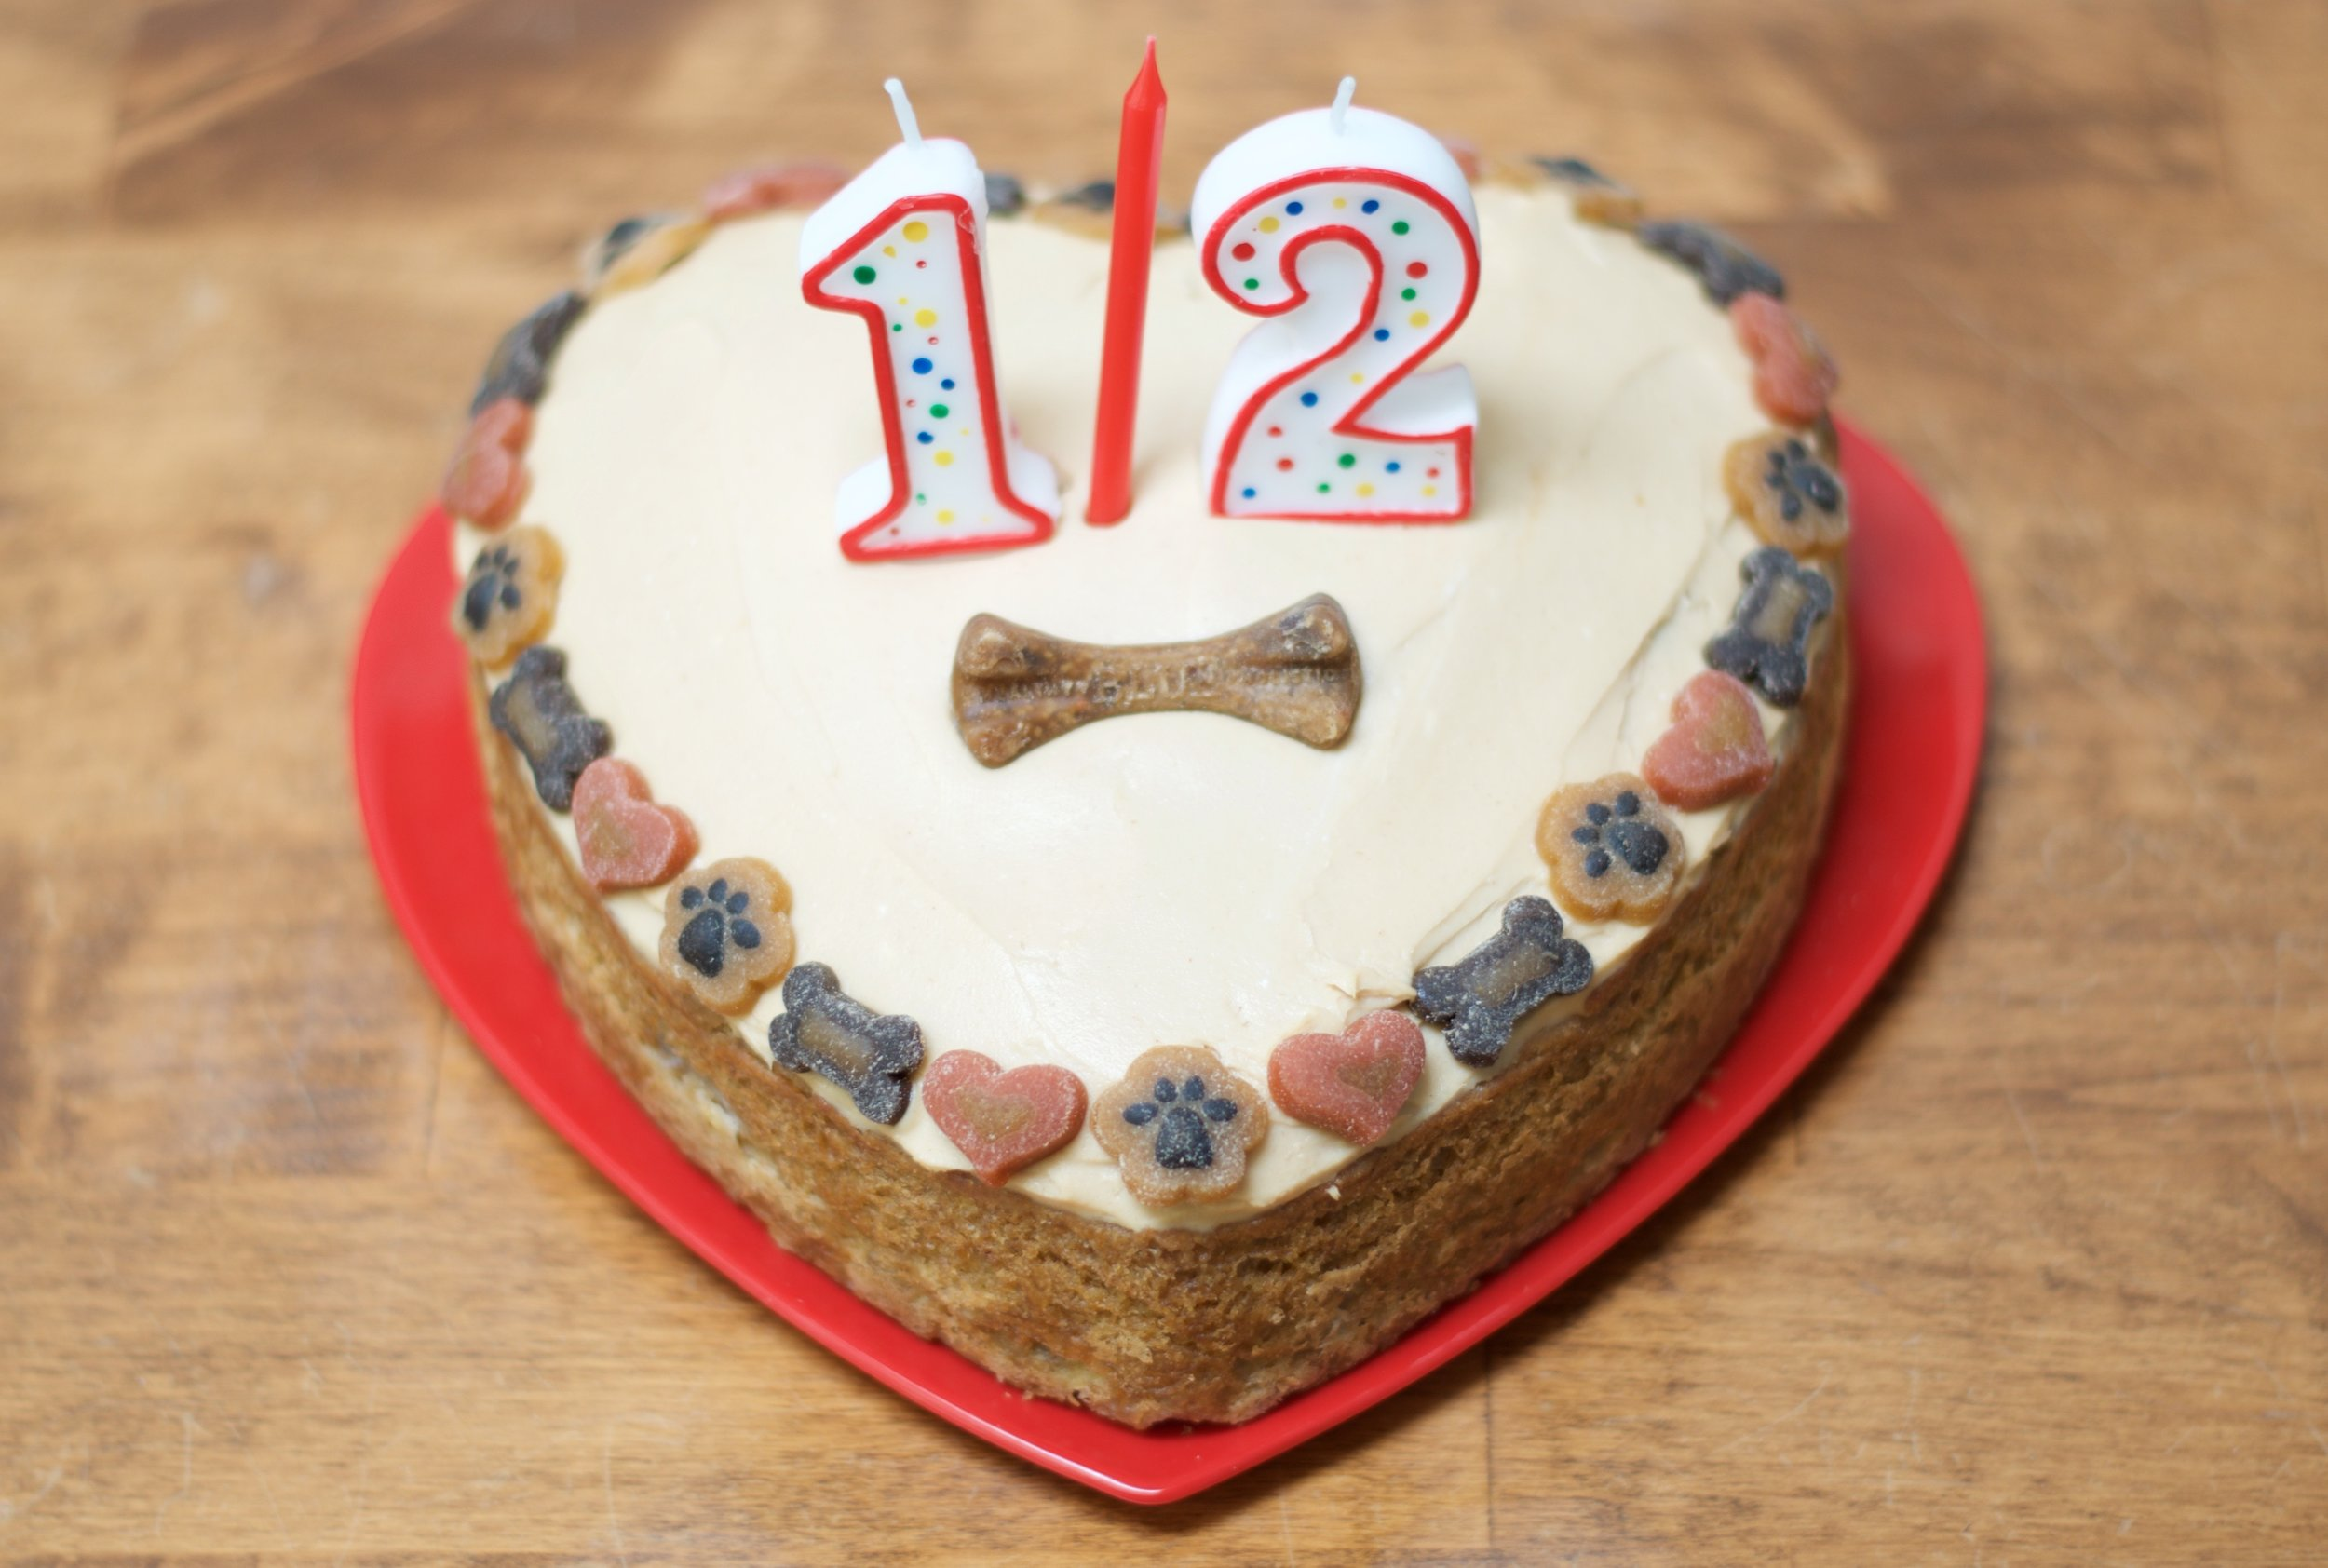 Dawsons 1 2 Birthday Cake Recipe For Dogs Breanna Spain Blog